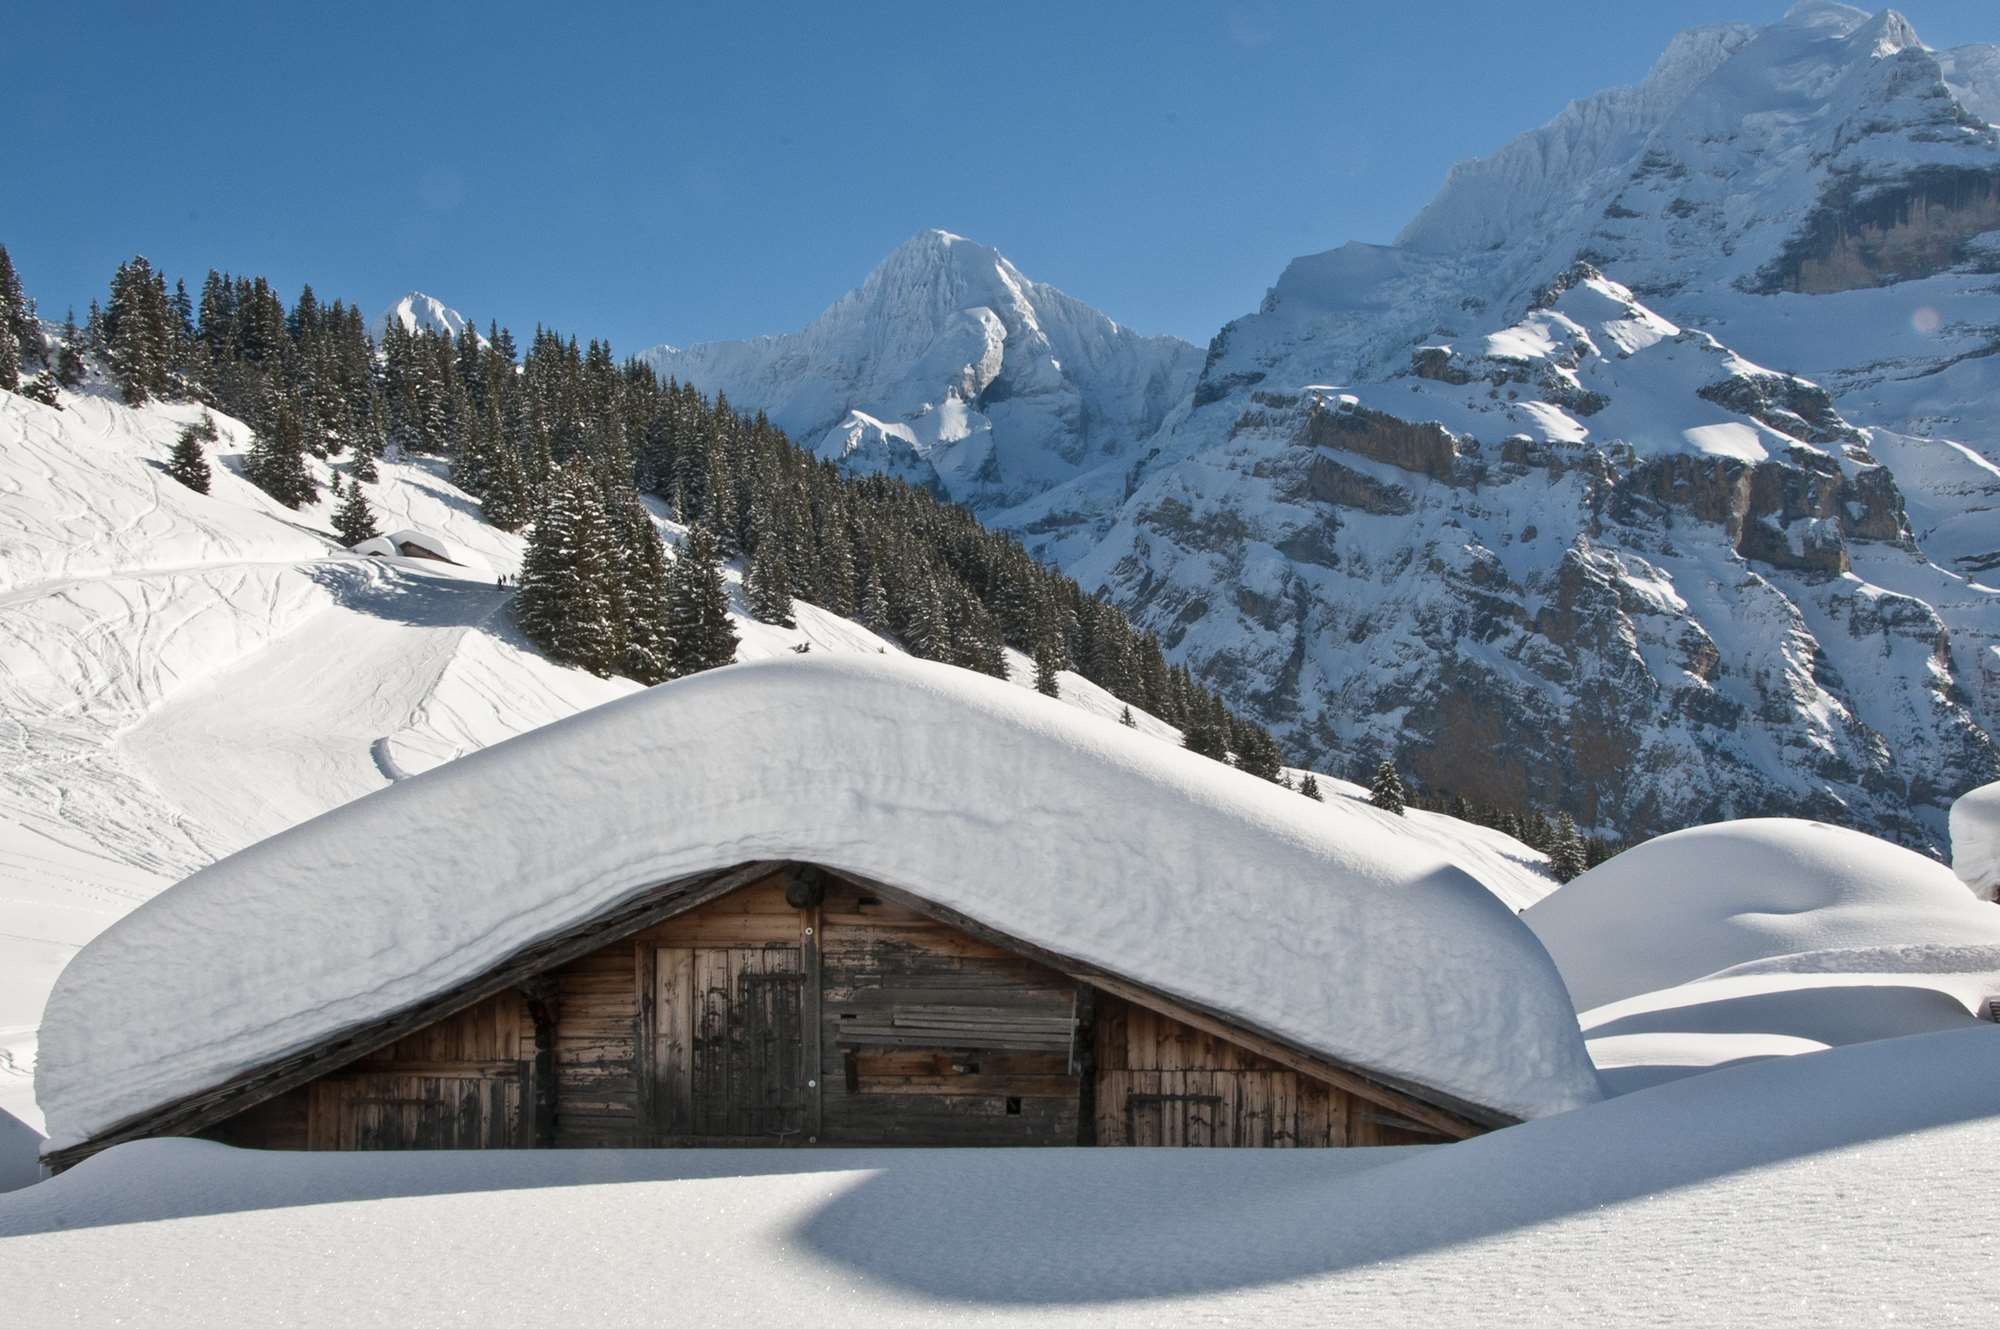 Swiss hut in Lauterbrunnen